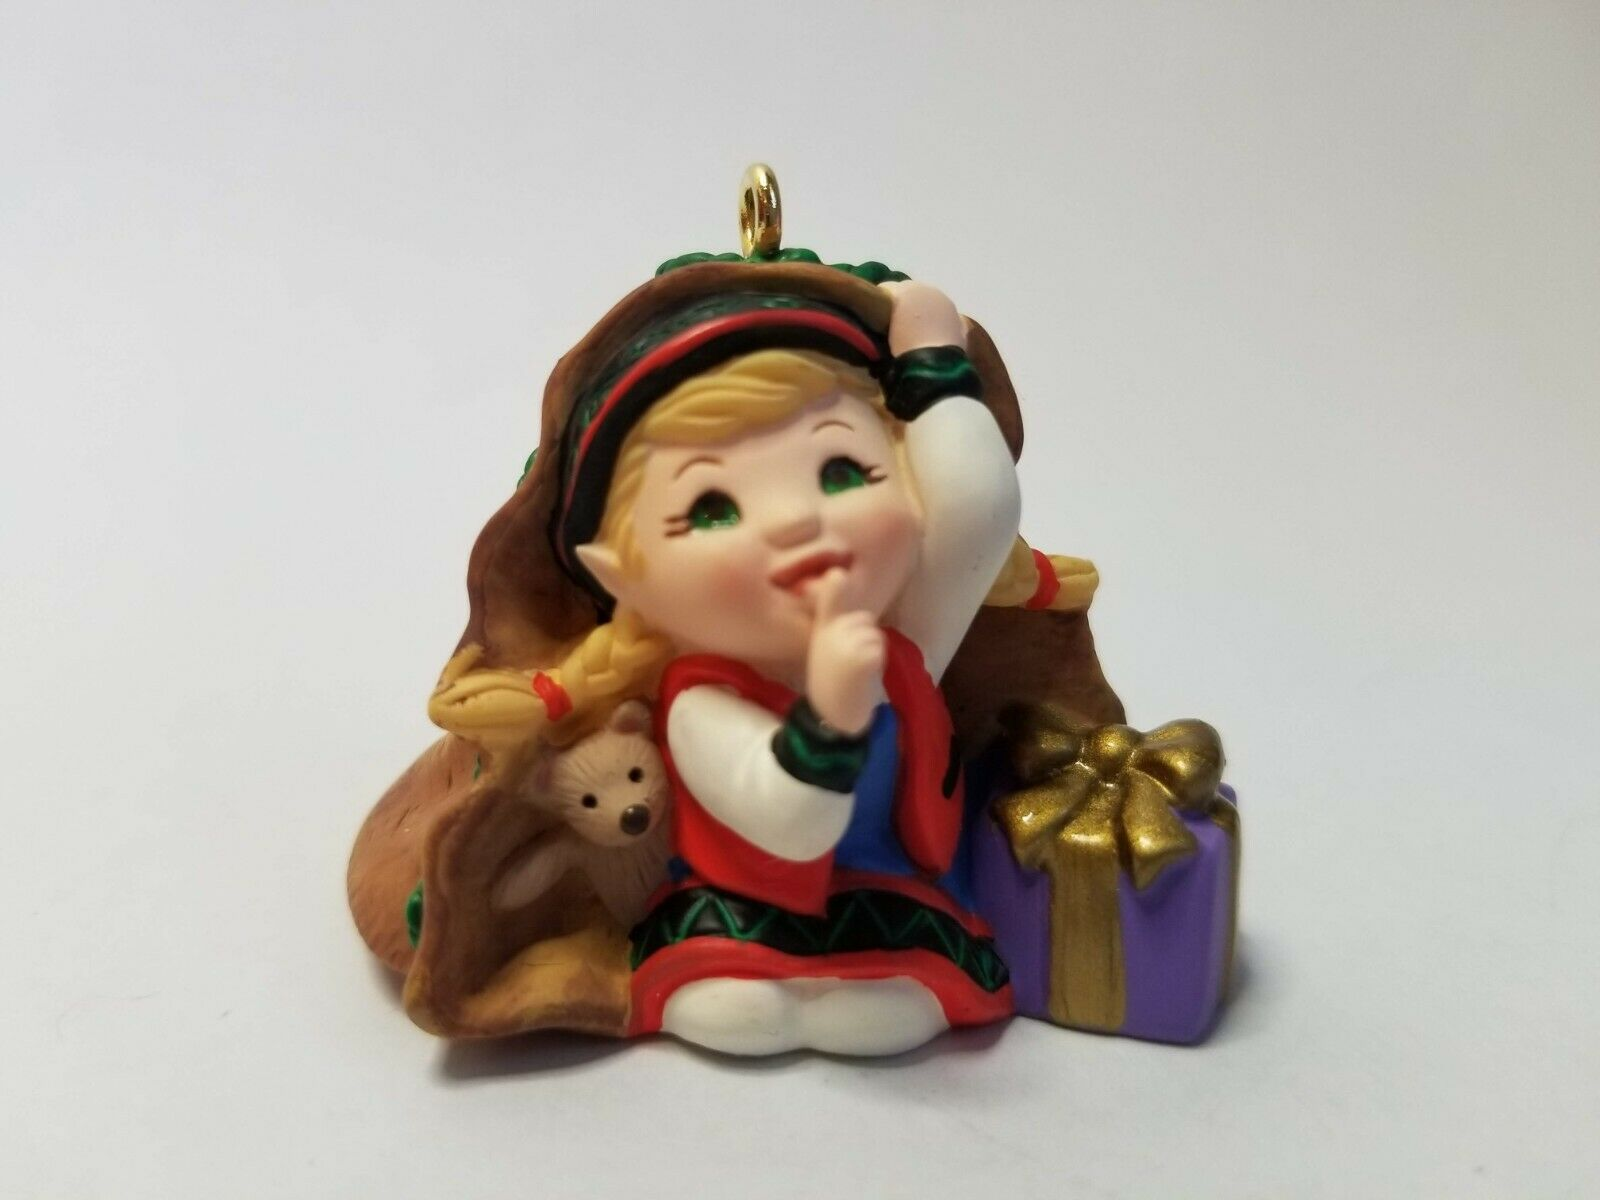 2001 Curius the Elf - Club Member ornament